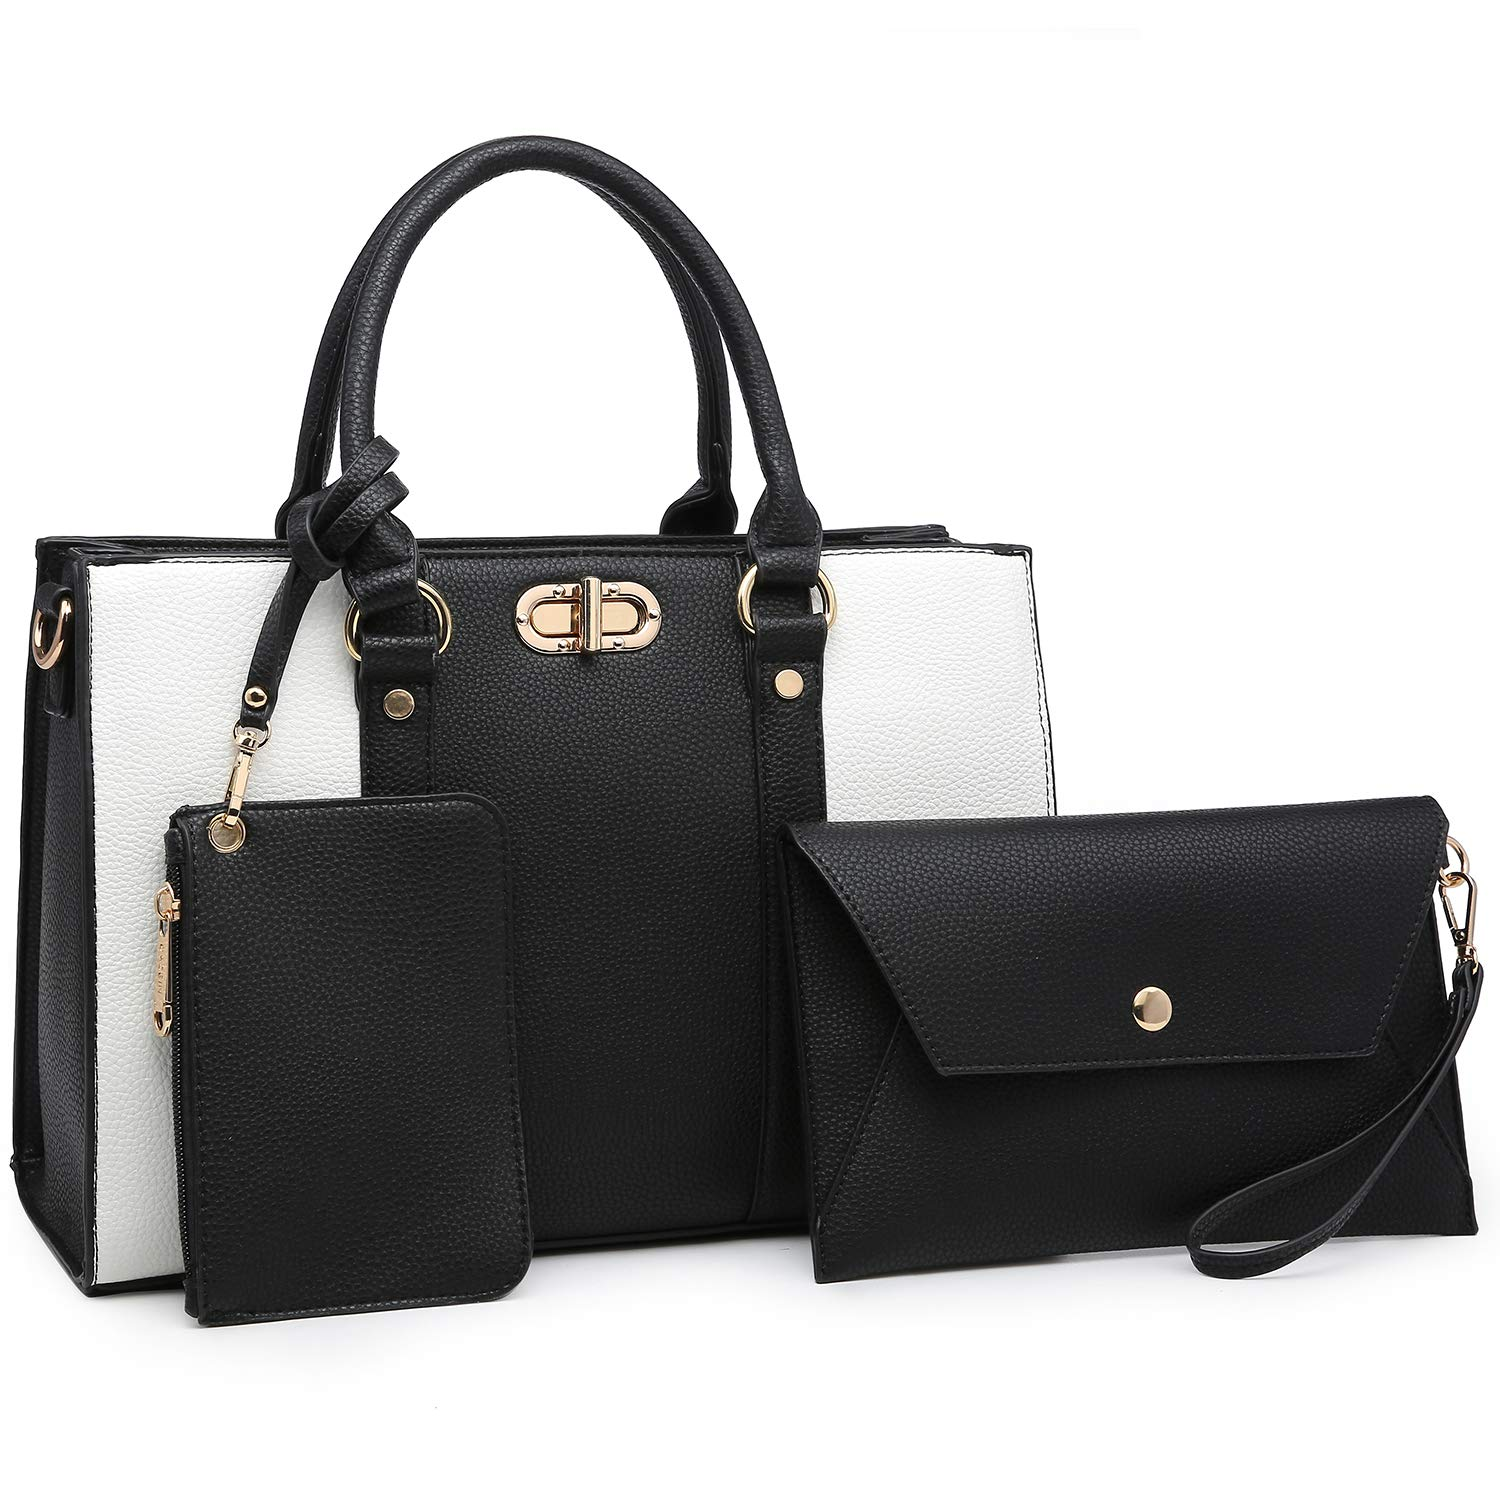 9de584cb4df4 Amazon.com  MMK Women handbags Top handle Satchel bags for Ladies Set Vegan  Leather purse wallet(3 pieces set) (8010-Black White)  Shoes